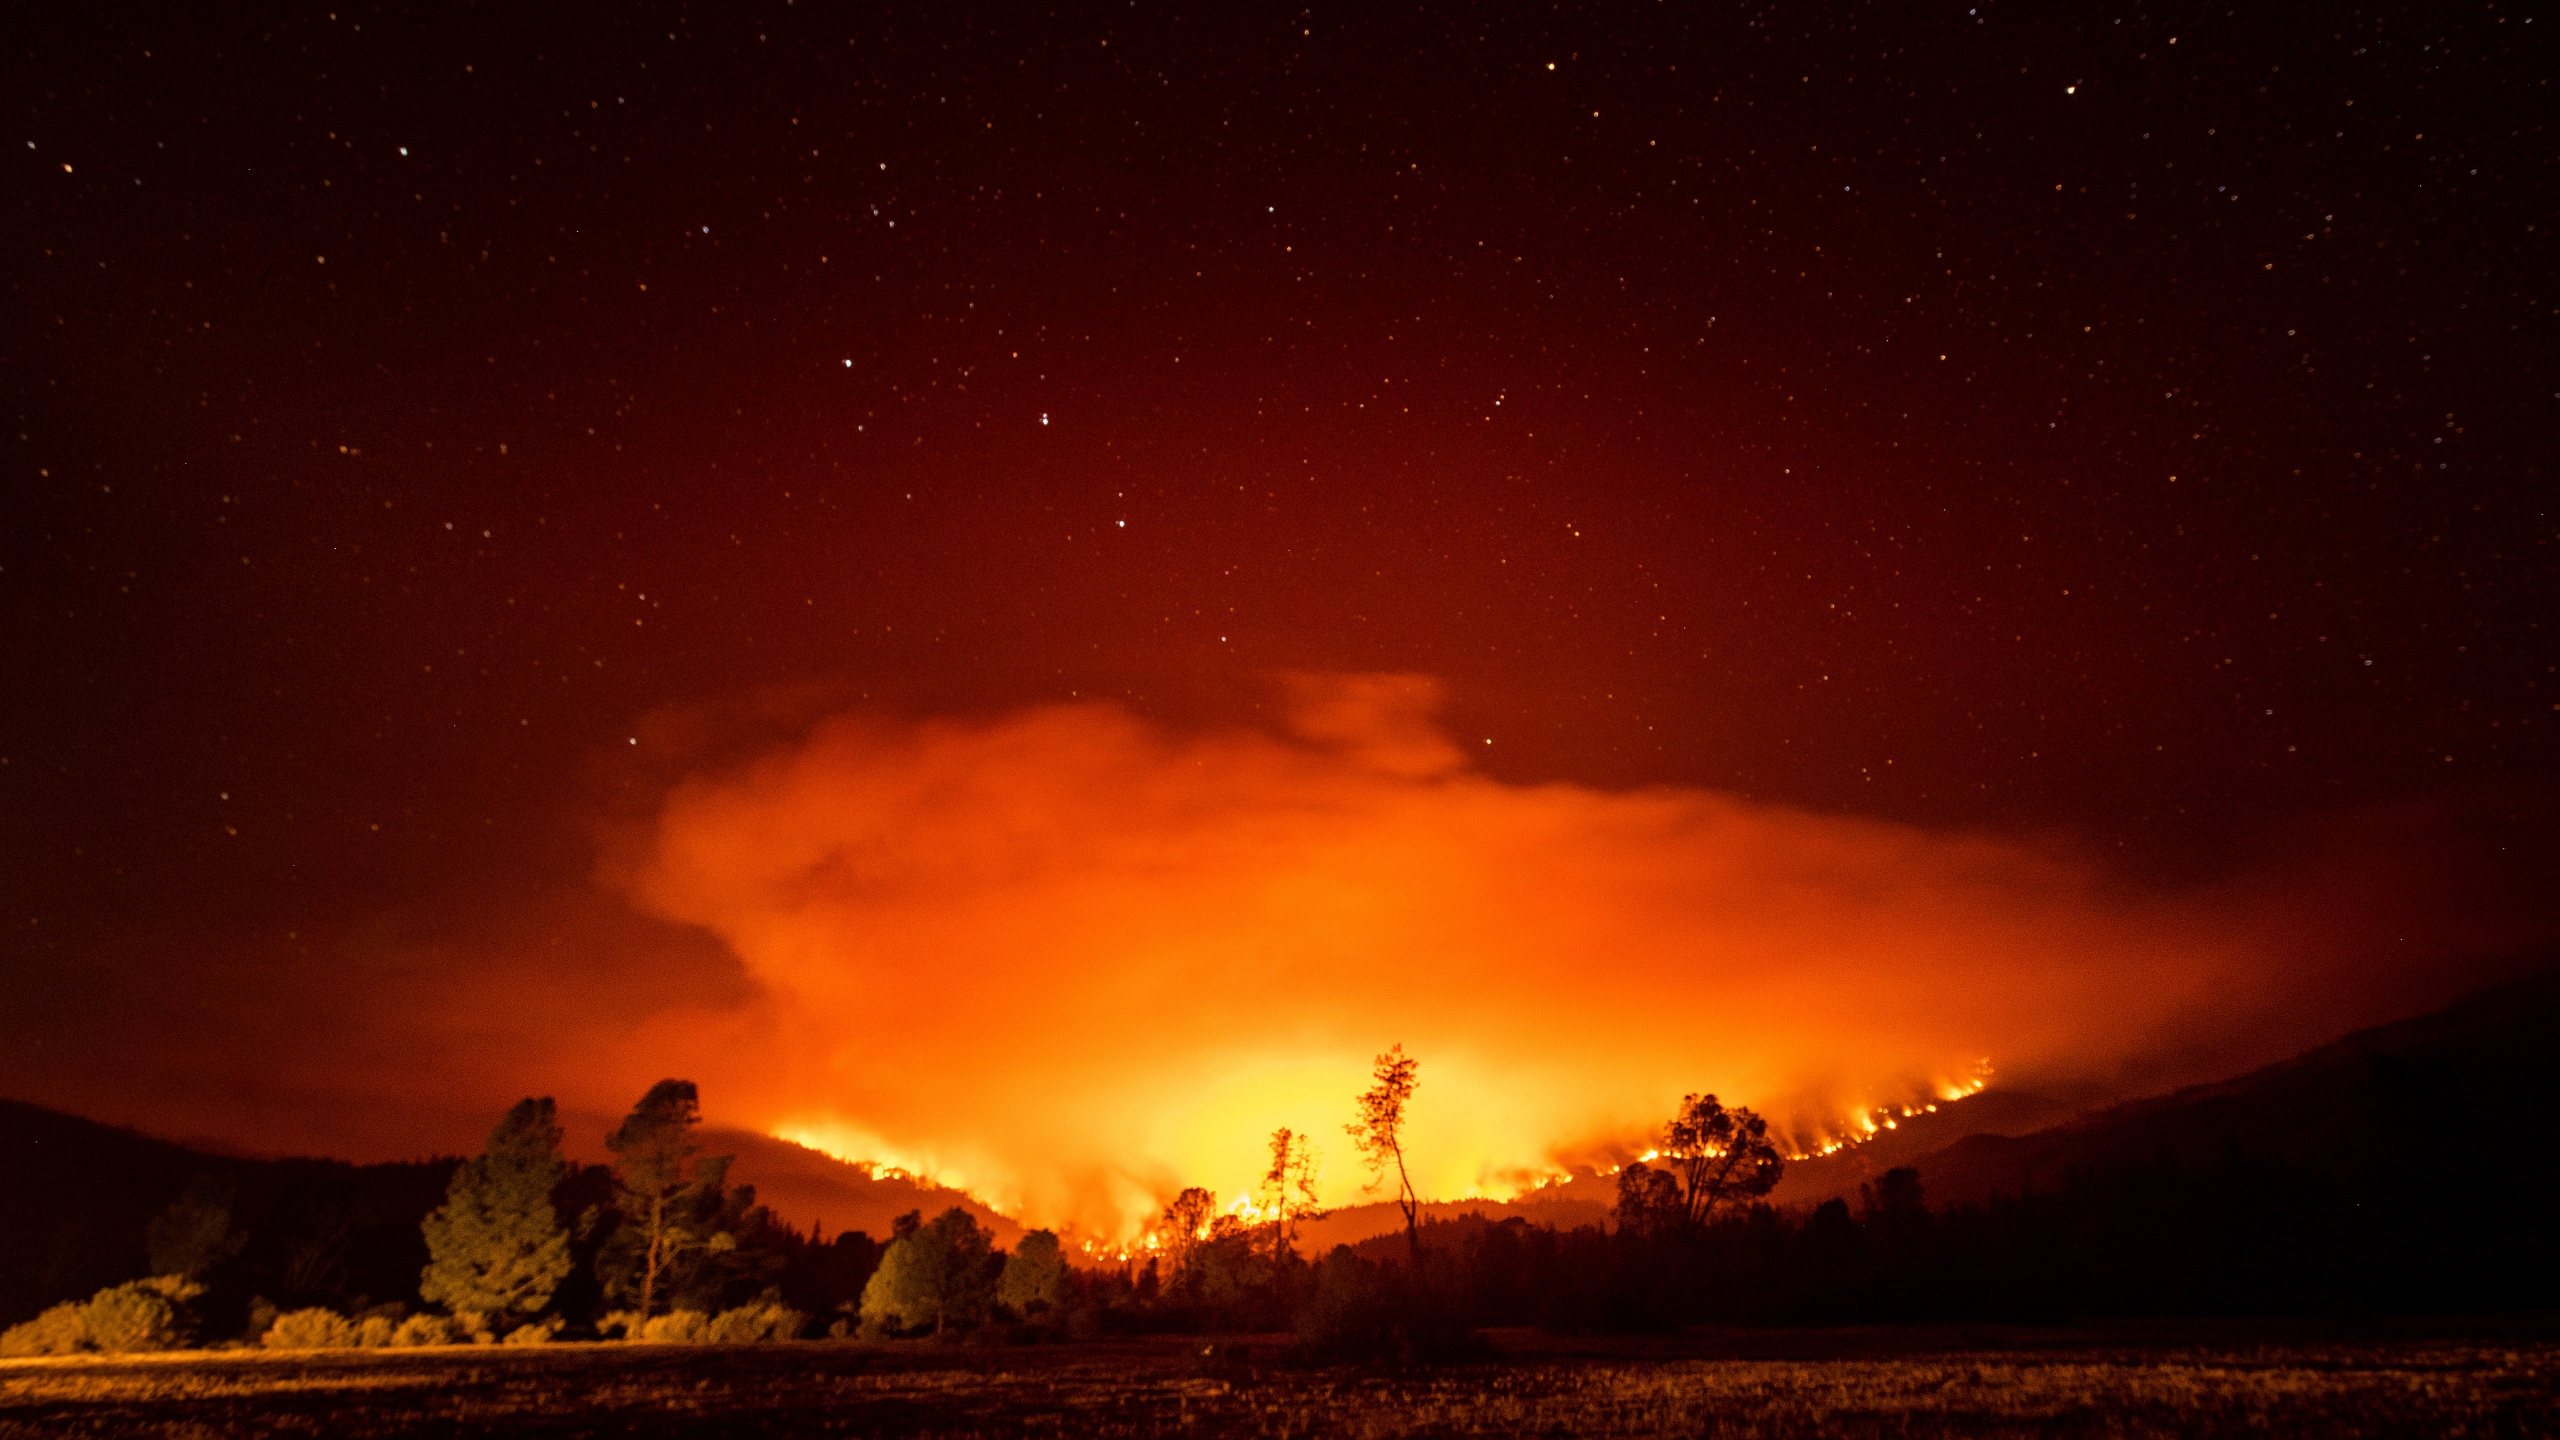 In this Sept. 16, 2020 file photo, the August Complex Fire burns near Lake Pillsbury in the Mendocino National Forest. (Noah Berger/Associated Press)